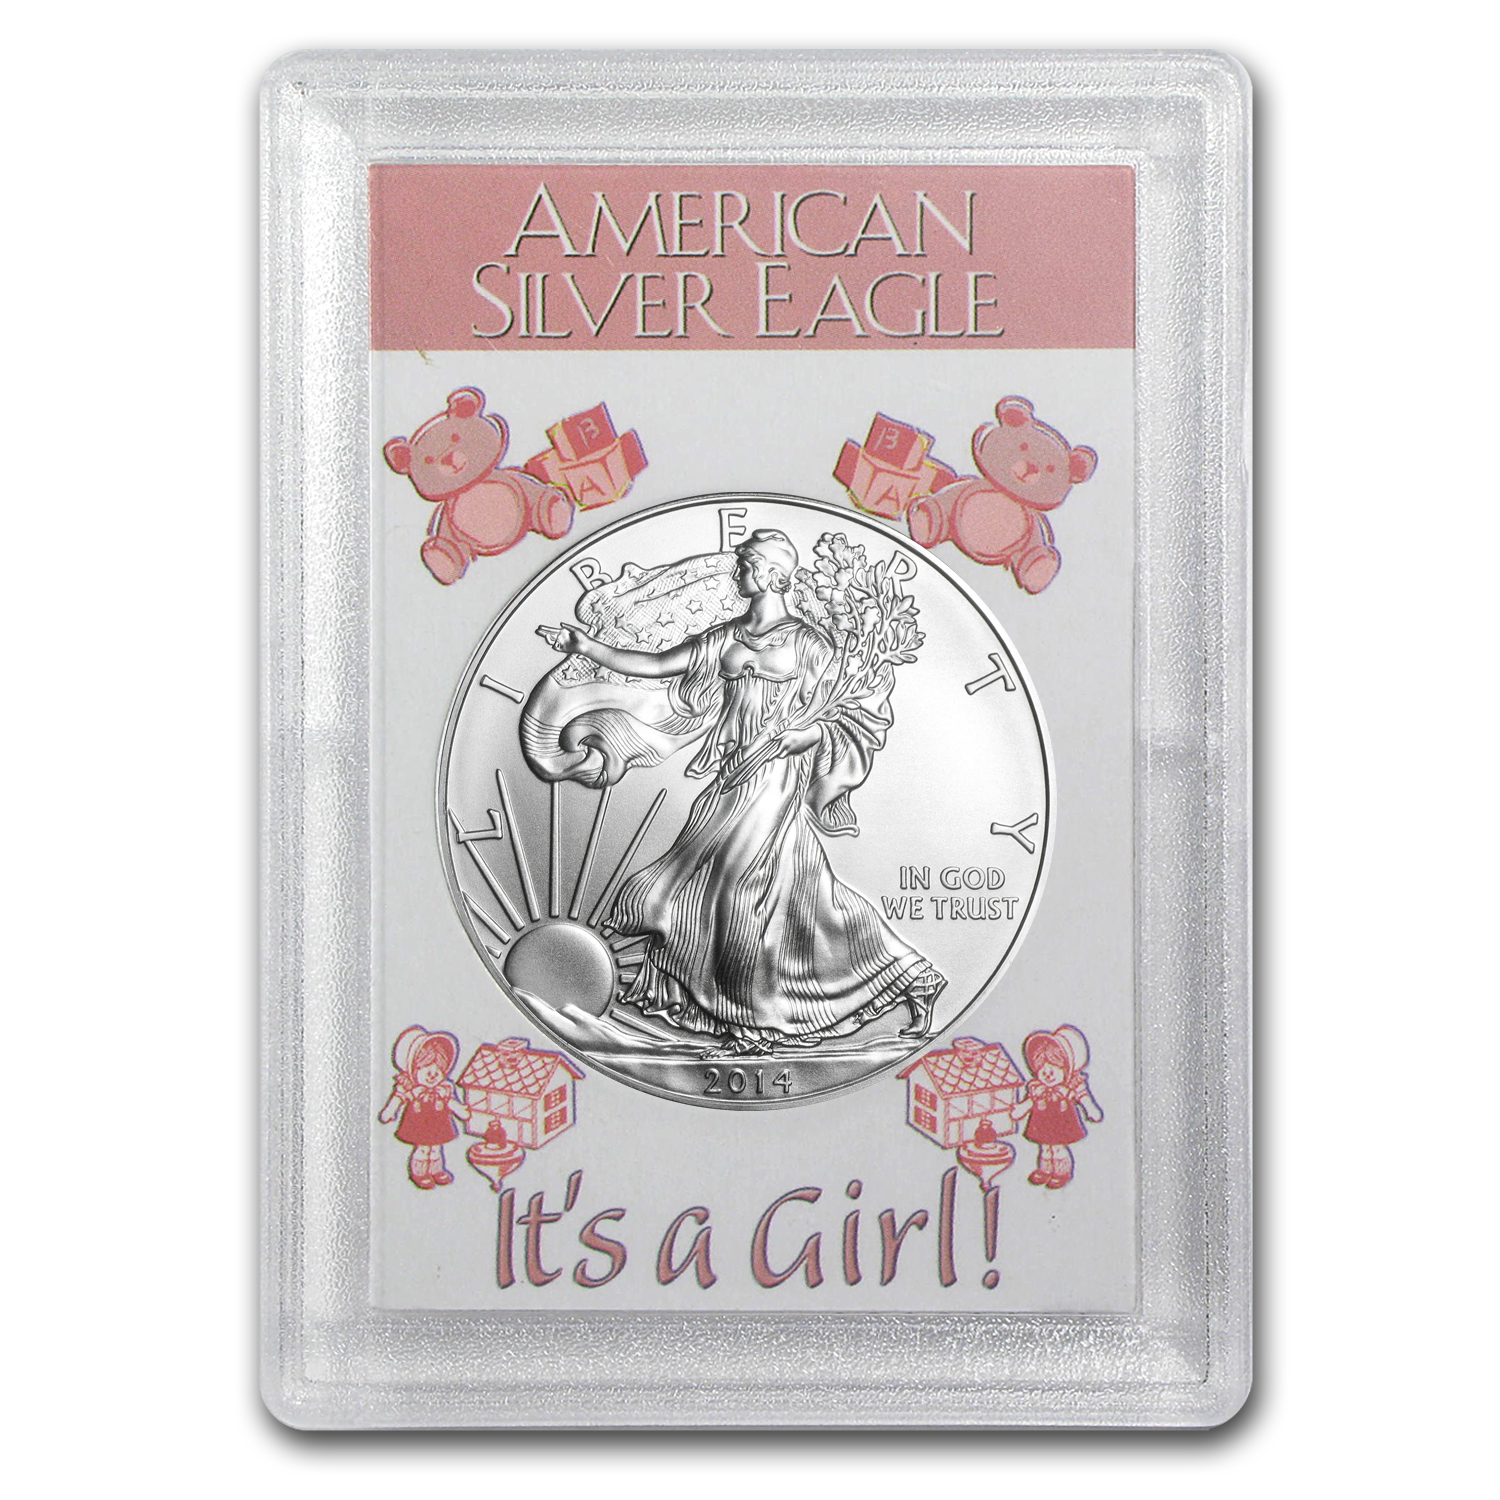 2014 1 oz Silver Eagle in Its a Girl! Design Harris Holder